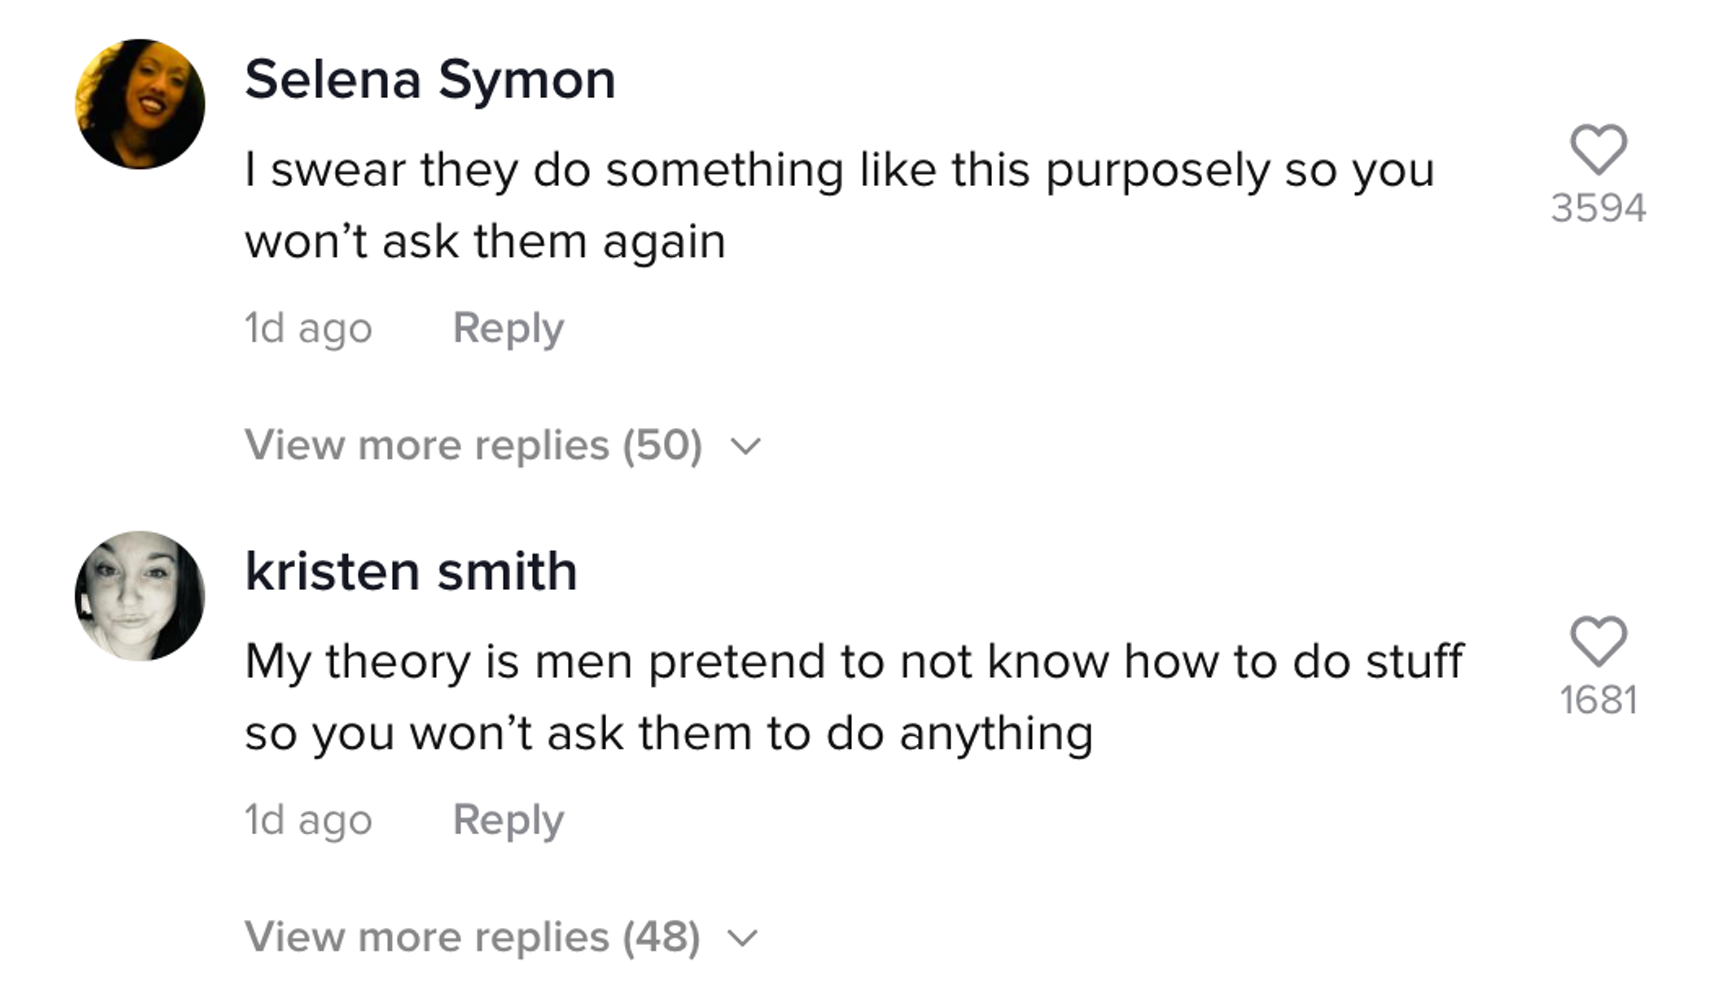 Selena Symon: I swear they do something like this purposely so you won't ask them again. Kristen Smith: My theory is men pretend not to know how to do stuff so you won't ask them to do anything